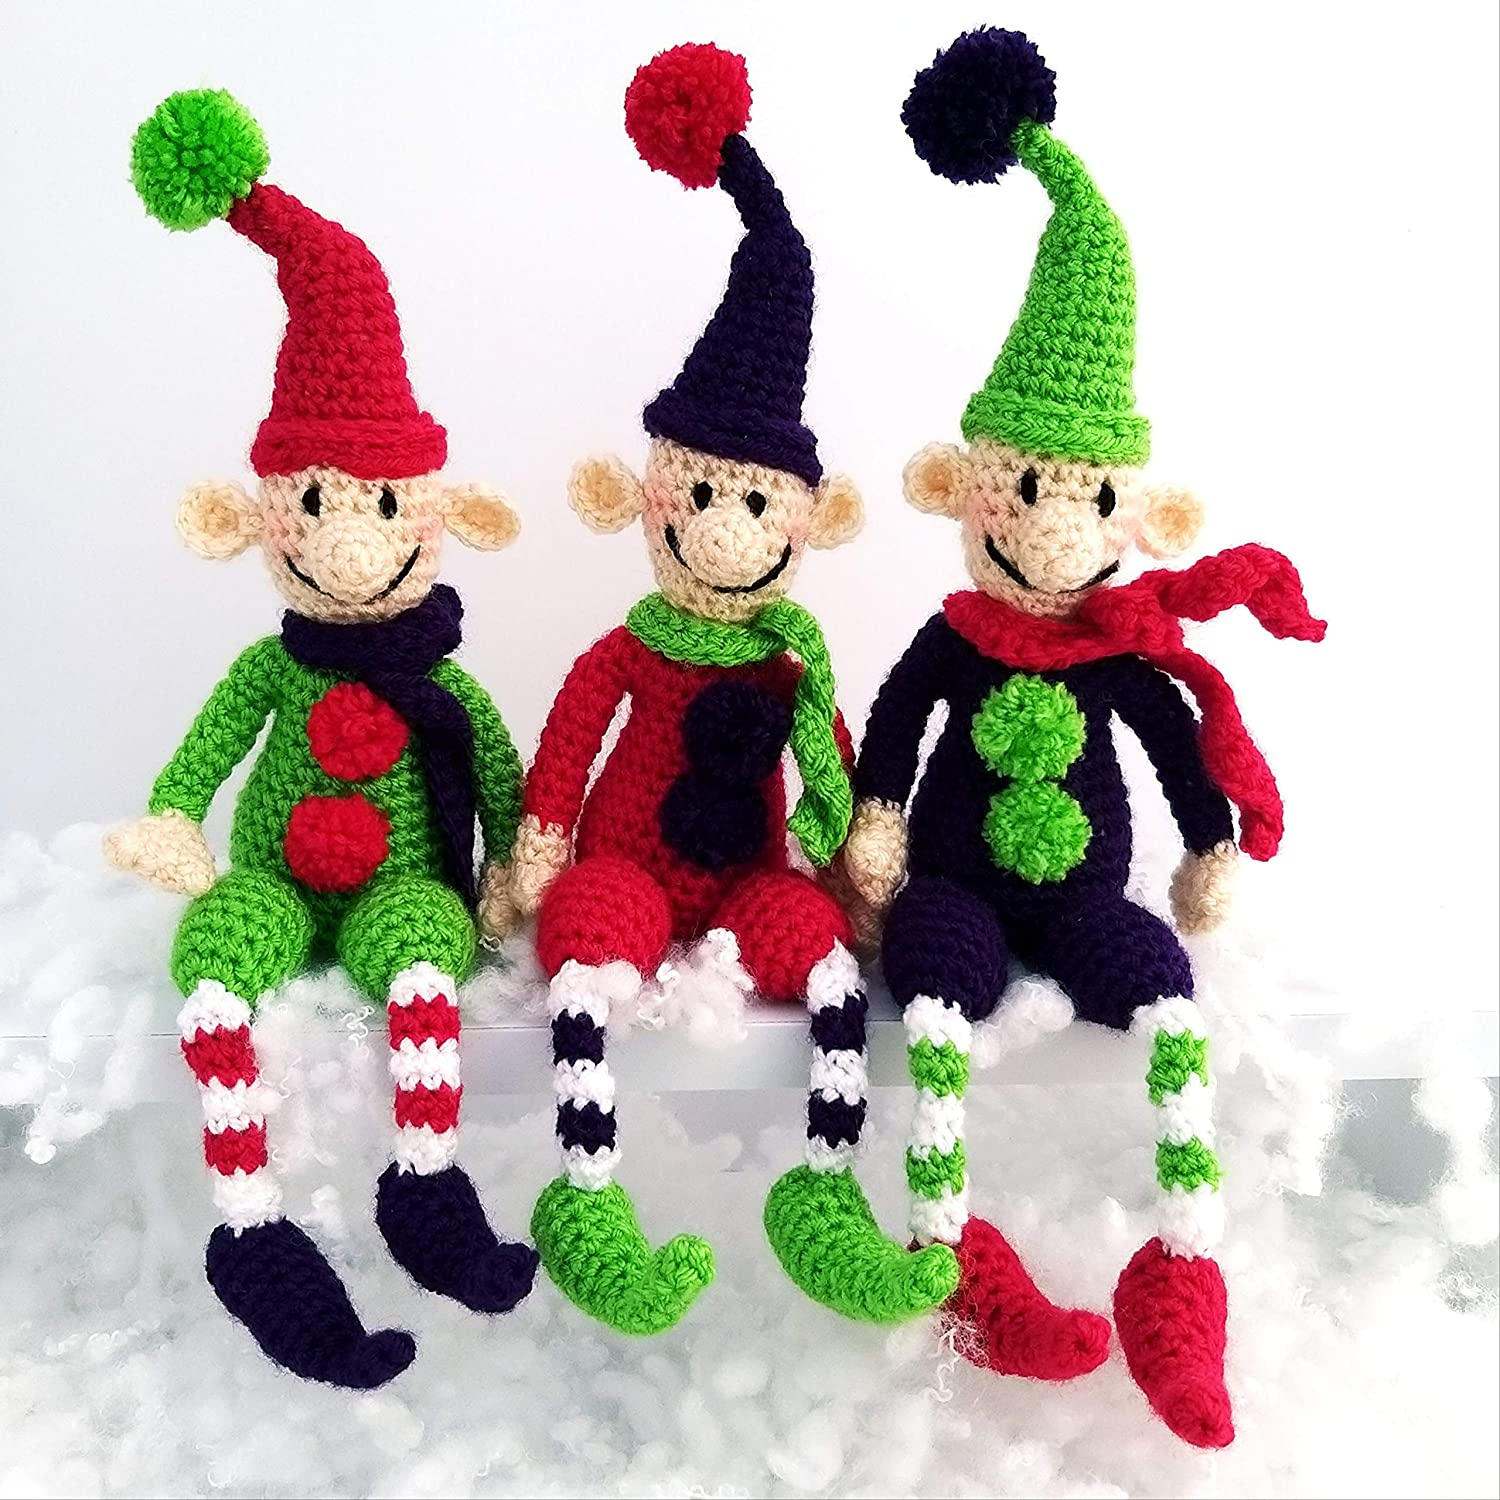 Christmas Crochet Elf Doll Amigurumi Patterns | Christmas crochet ... | 1500x1500